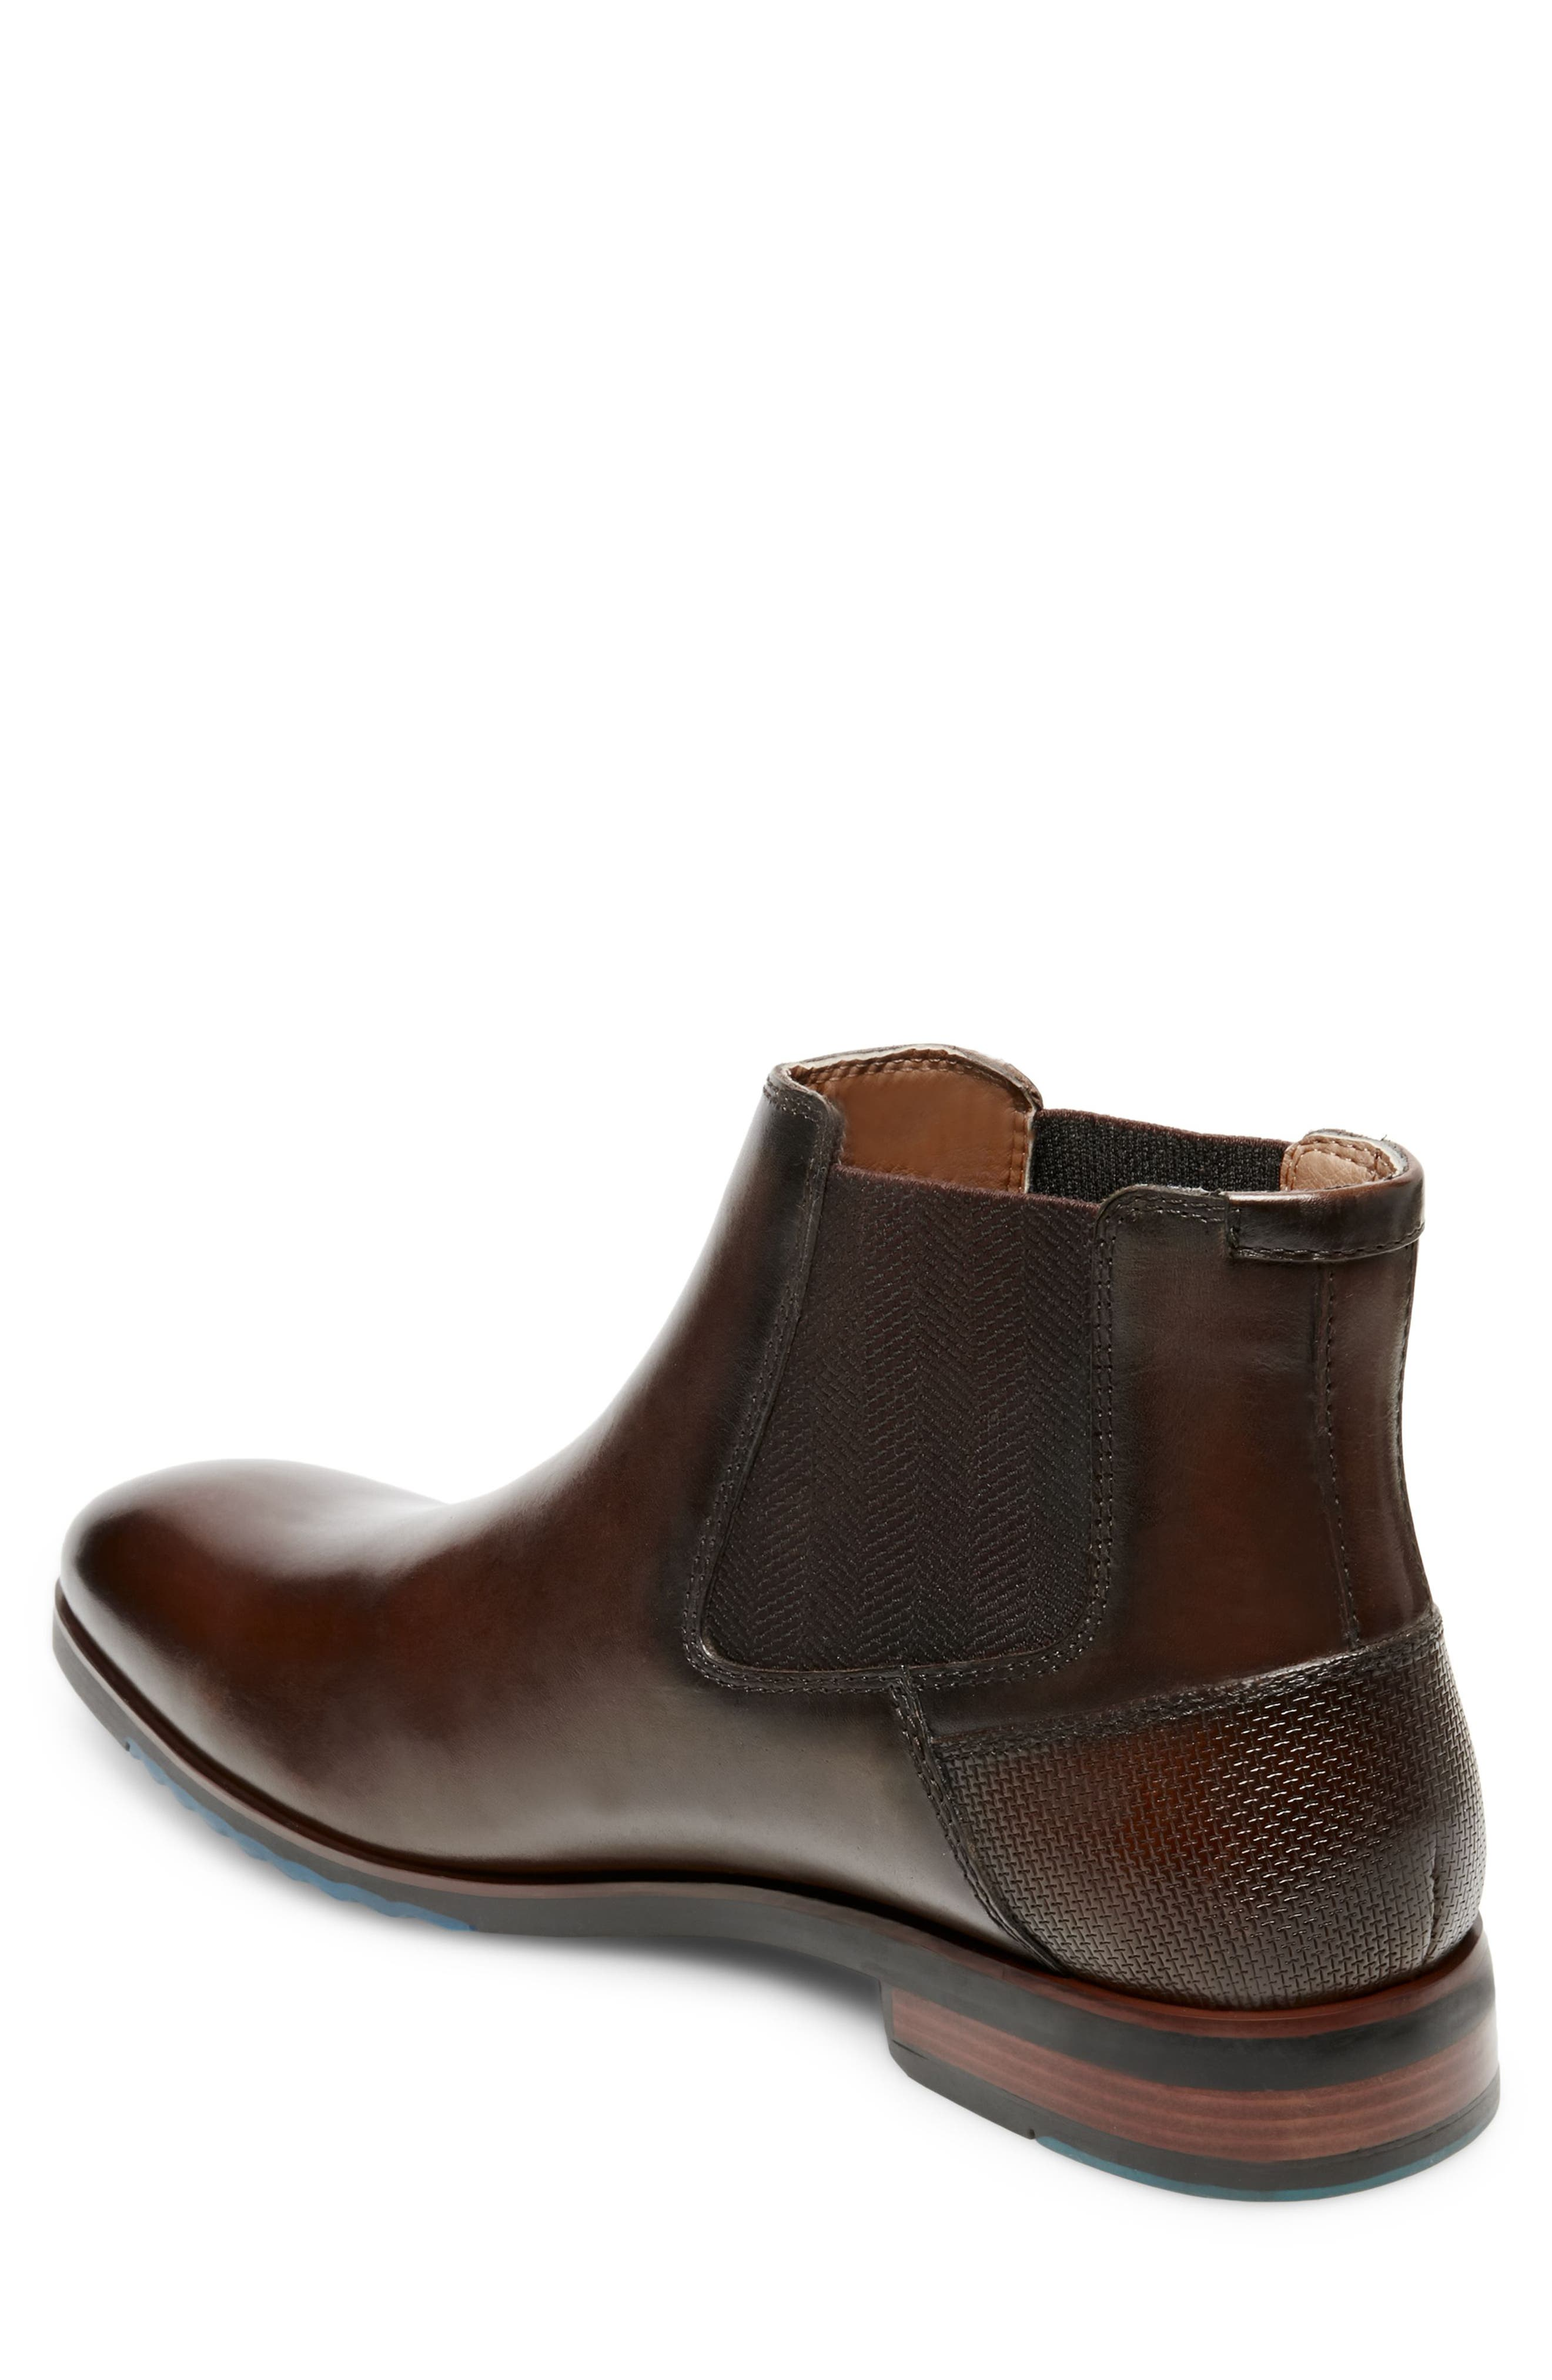 Leston Chelsea Boot,                             Alternate thumbnail 2, color,                             BROWN LEATHER